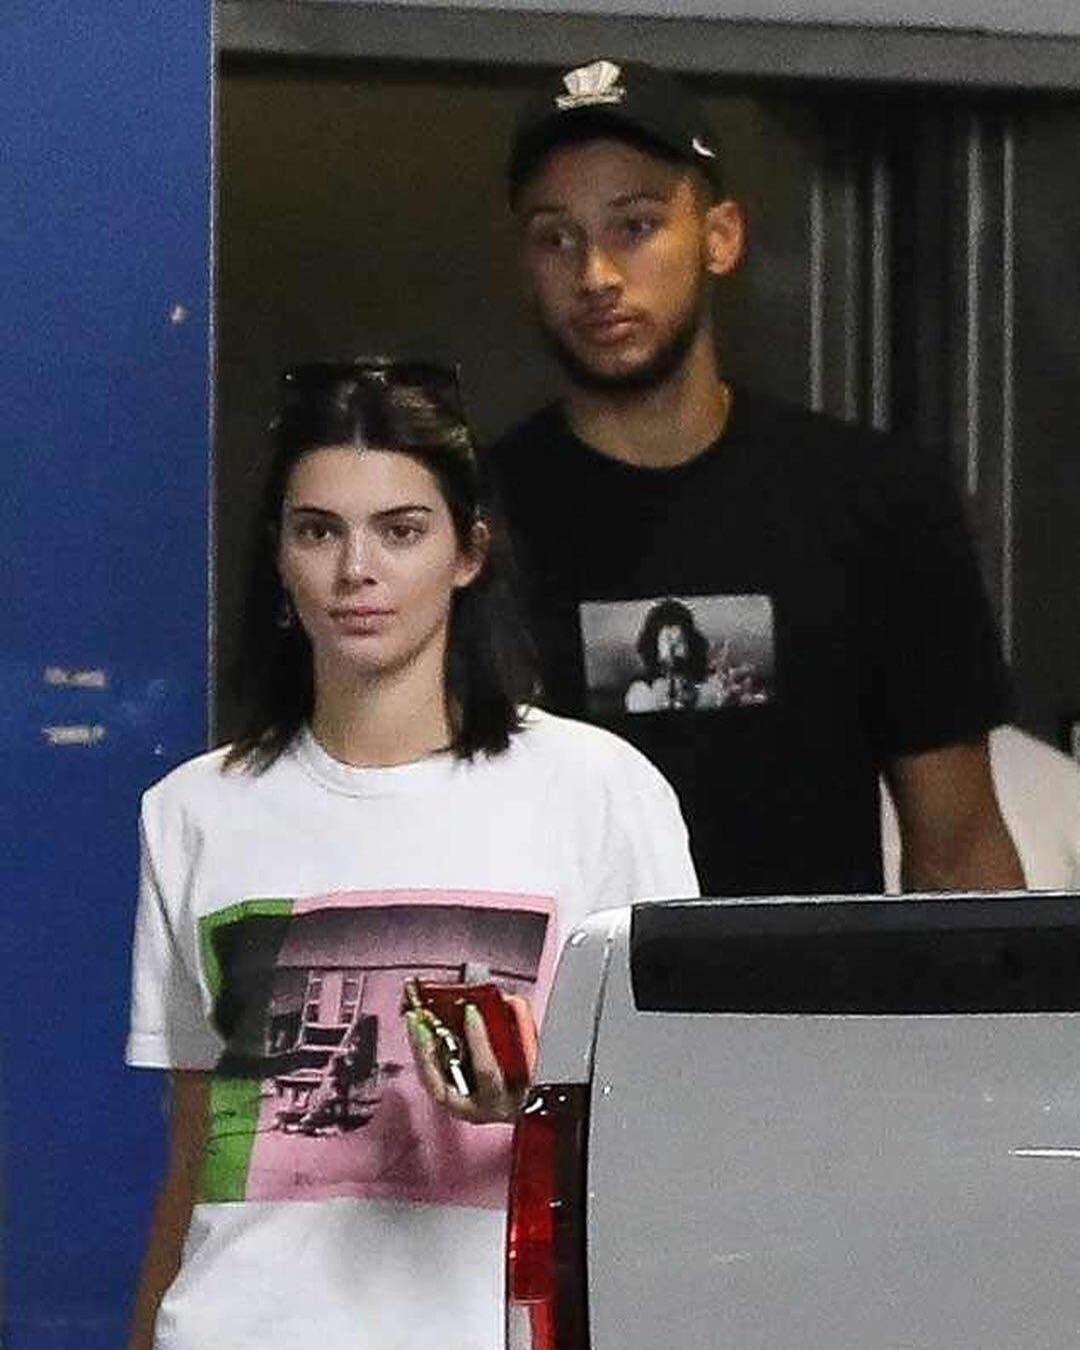 E News On Instagram Kendall Jenner And Ben Simmons Are Together And Khloe Kardashian Confirmed It Link In Bio For Everyt Kendall Kendall Jenner Ben Simmons